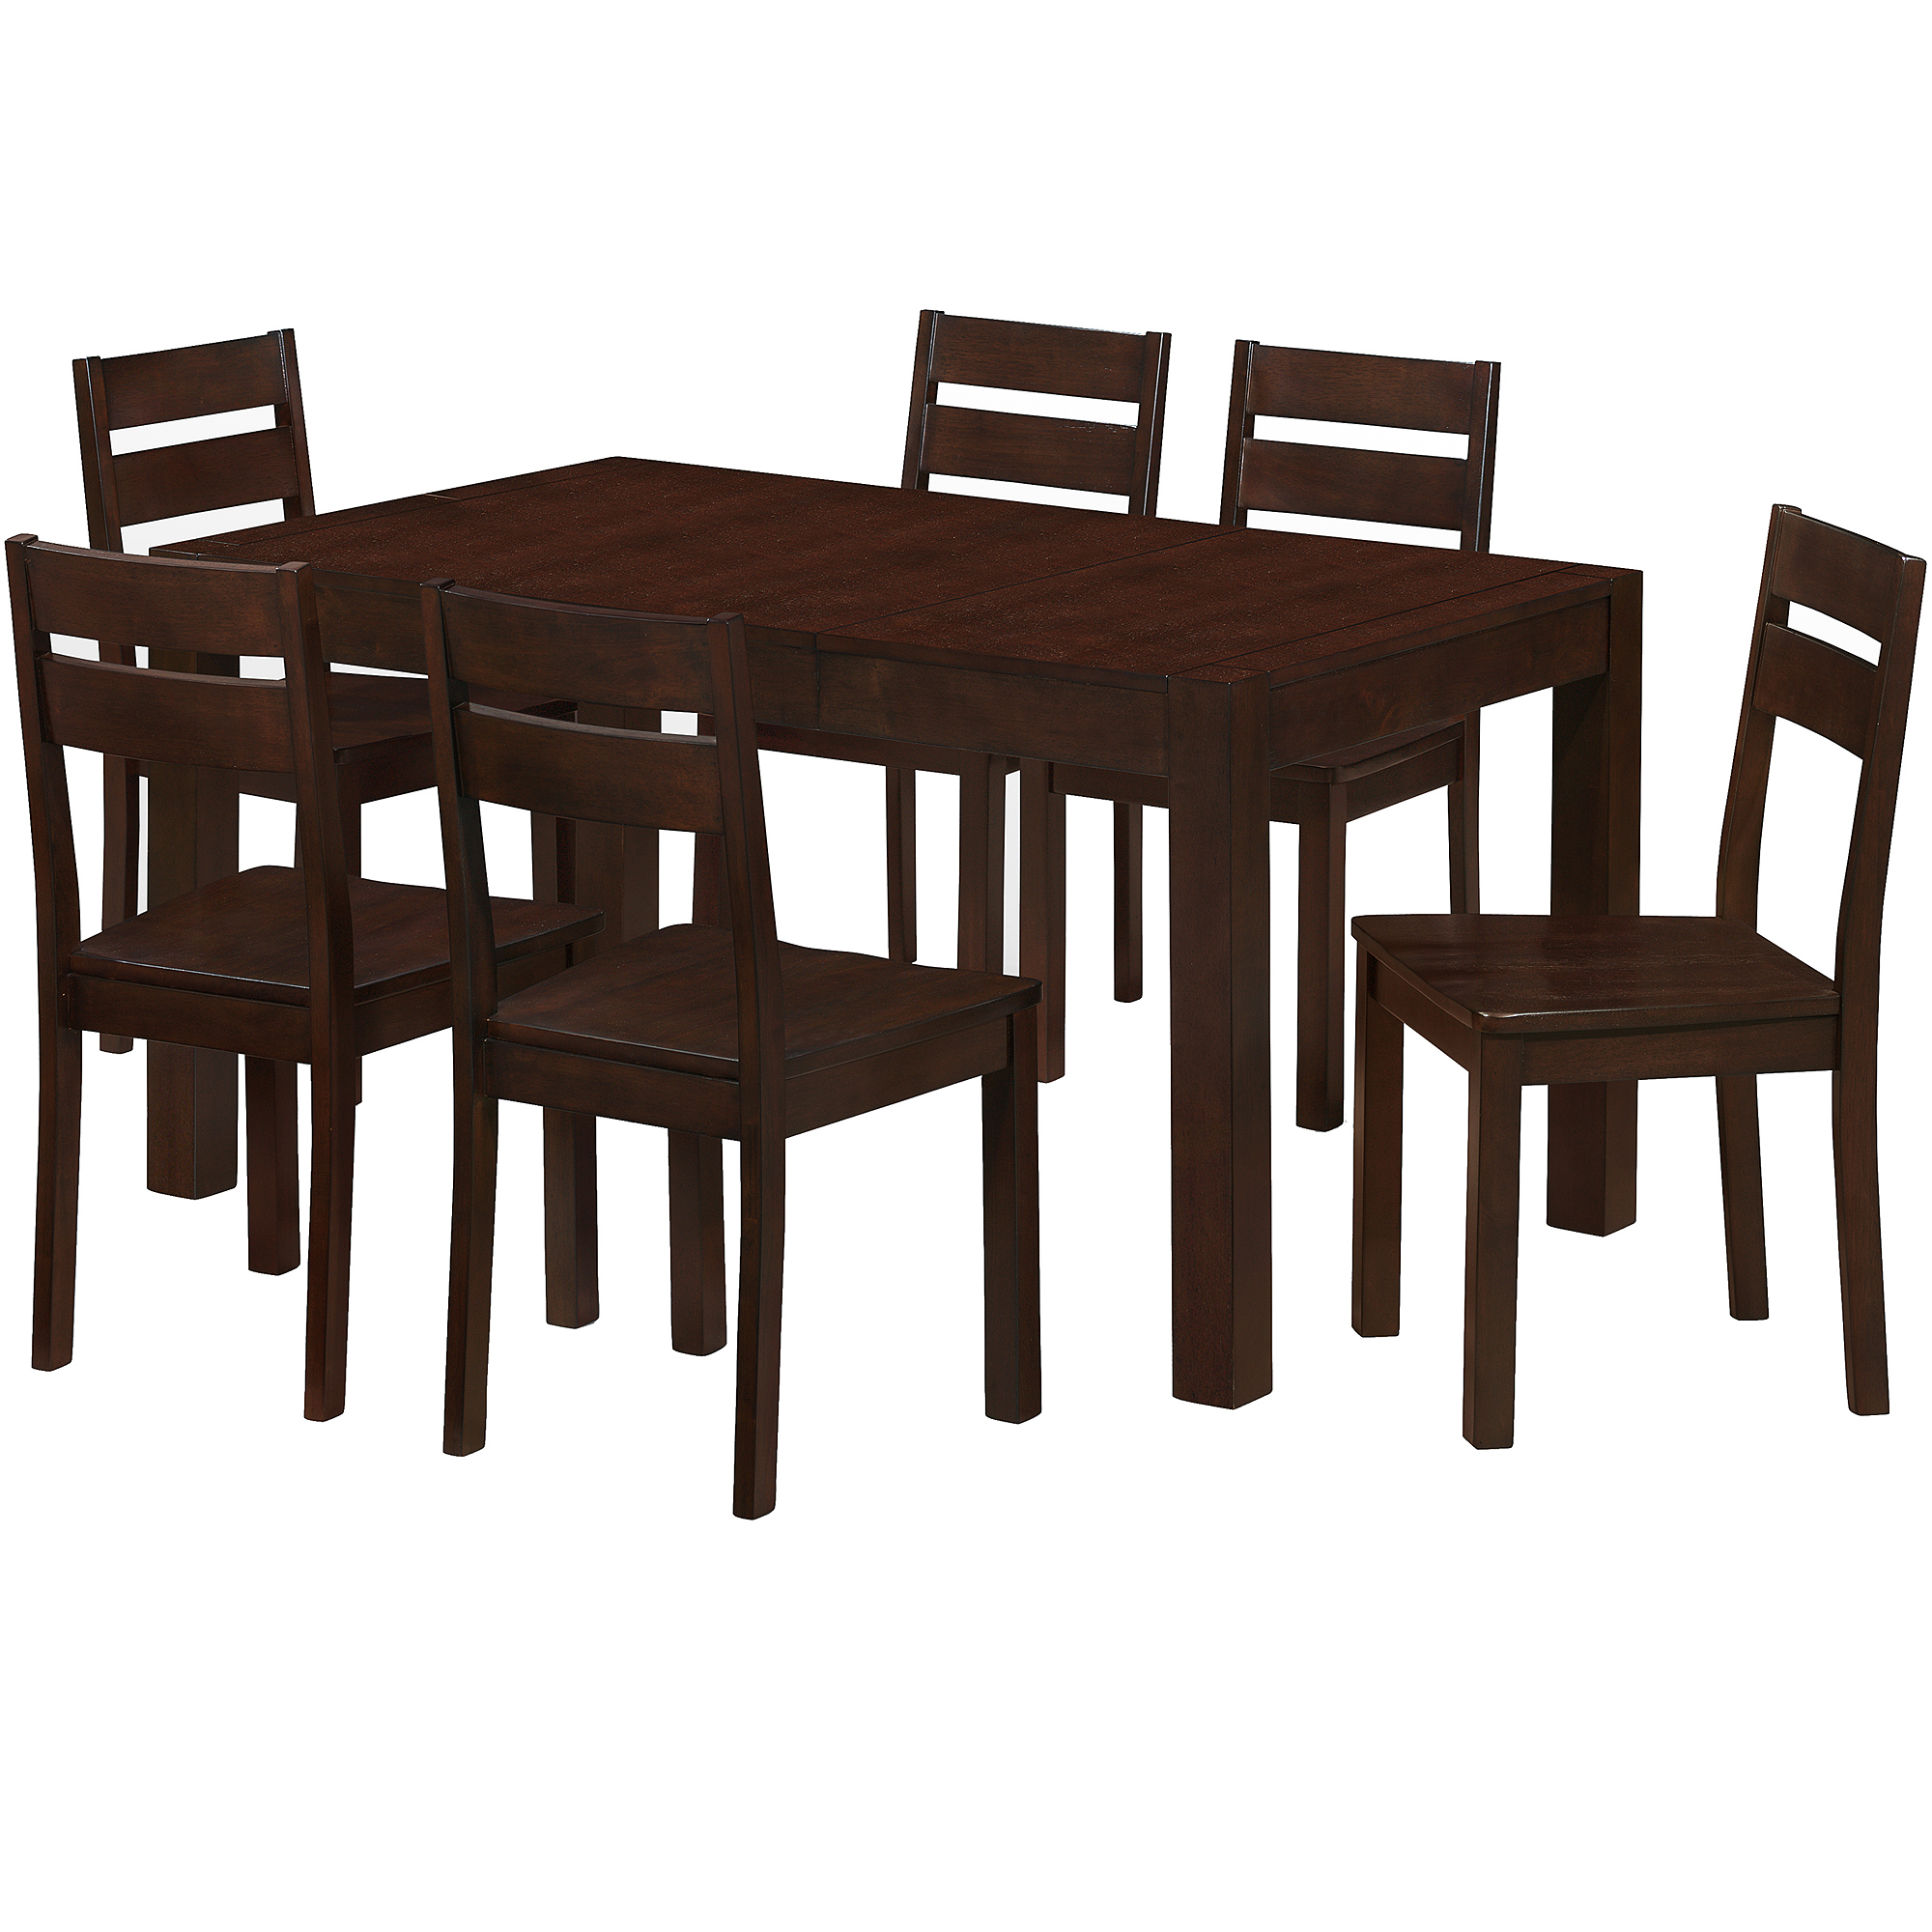 Imagio Home Borken Dining Table, Madeira Chocolate Finish